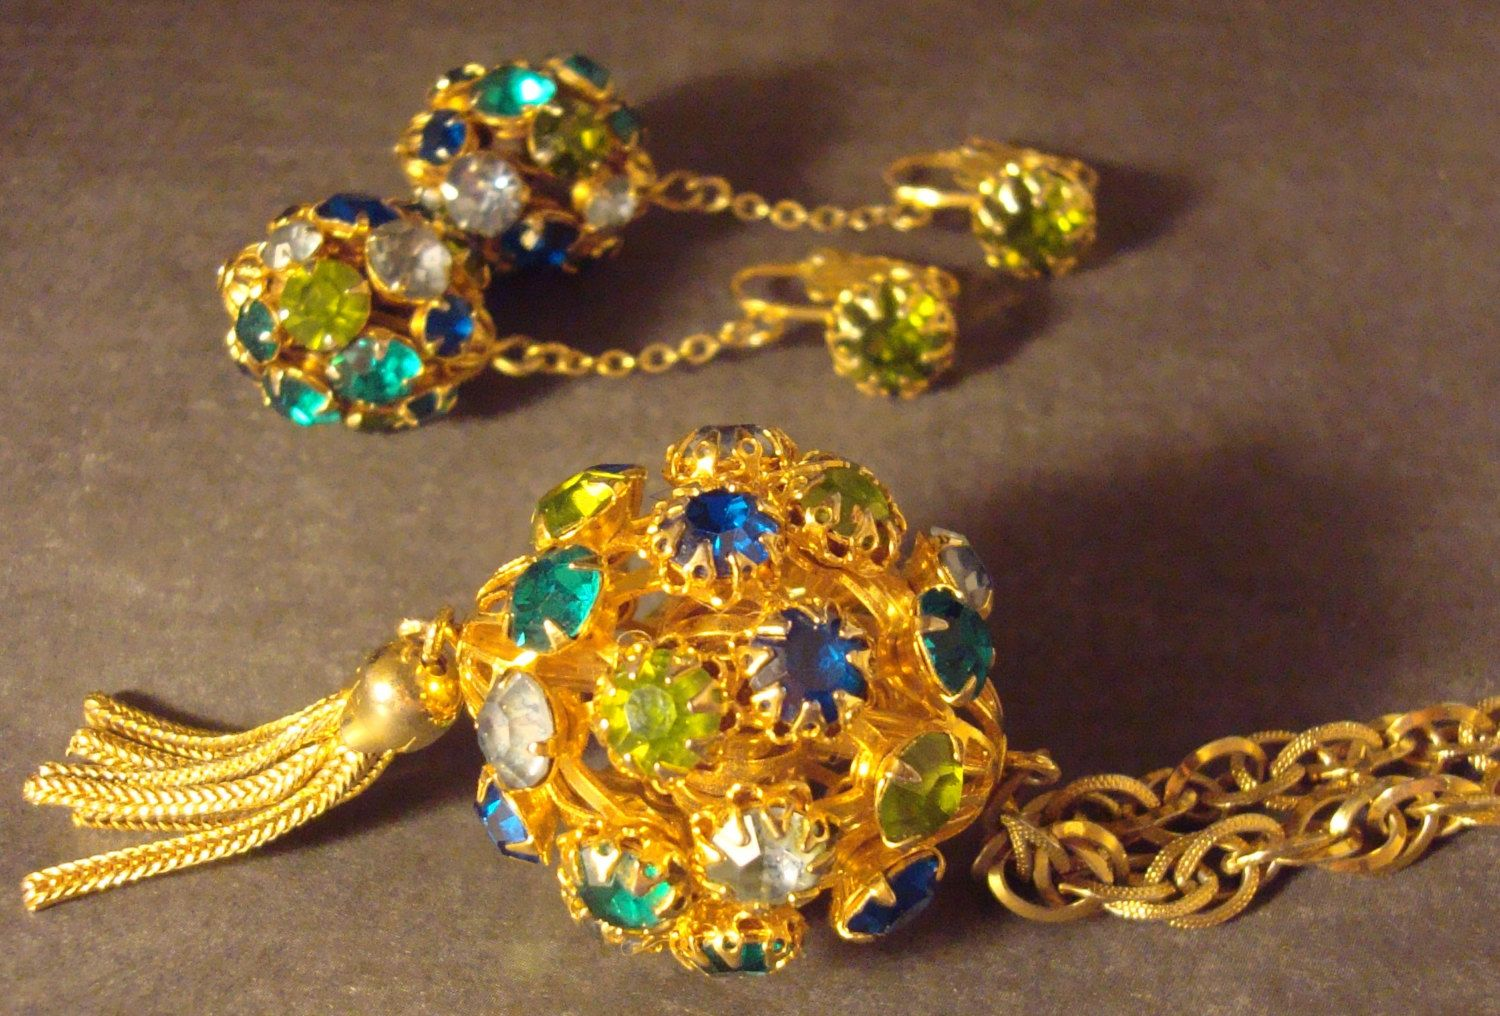 080c75779 Vintage ball charm tassel necklace earrings set, 1950's or 60's, blue &  green glass stones, disco ball drop dangle charms, gold tone, ...